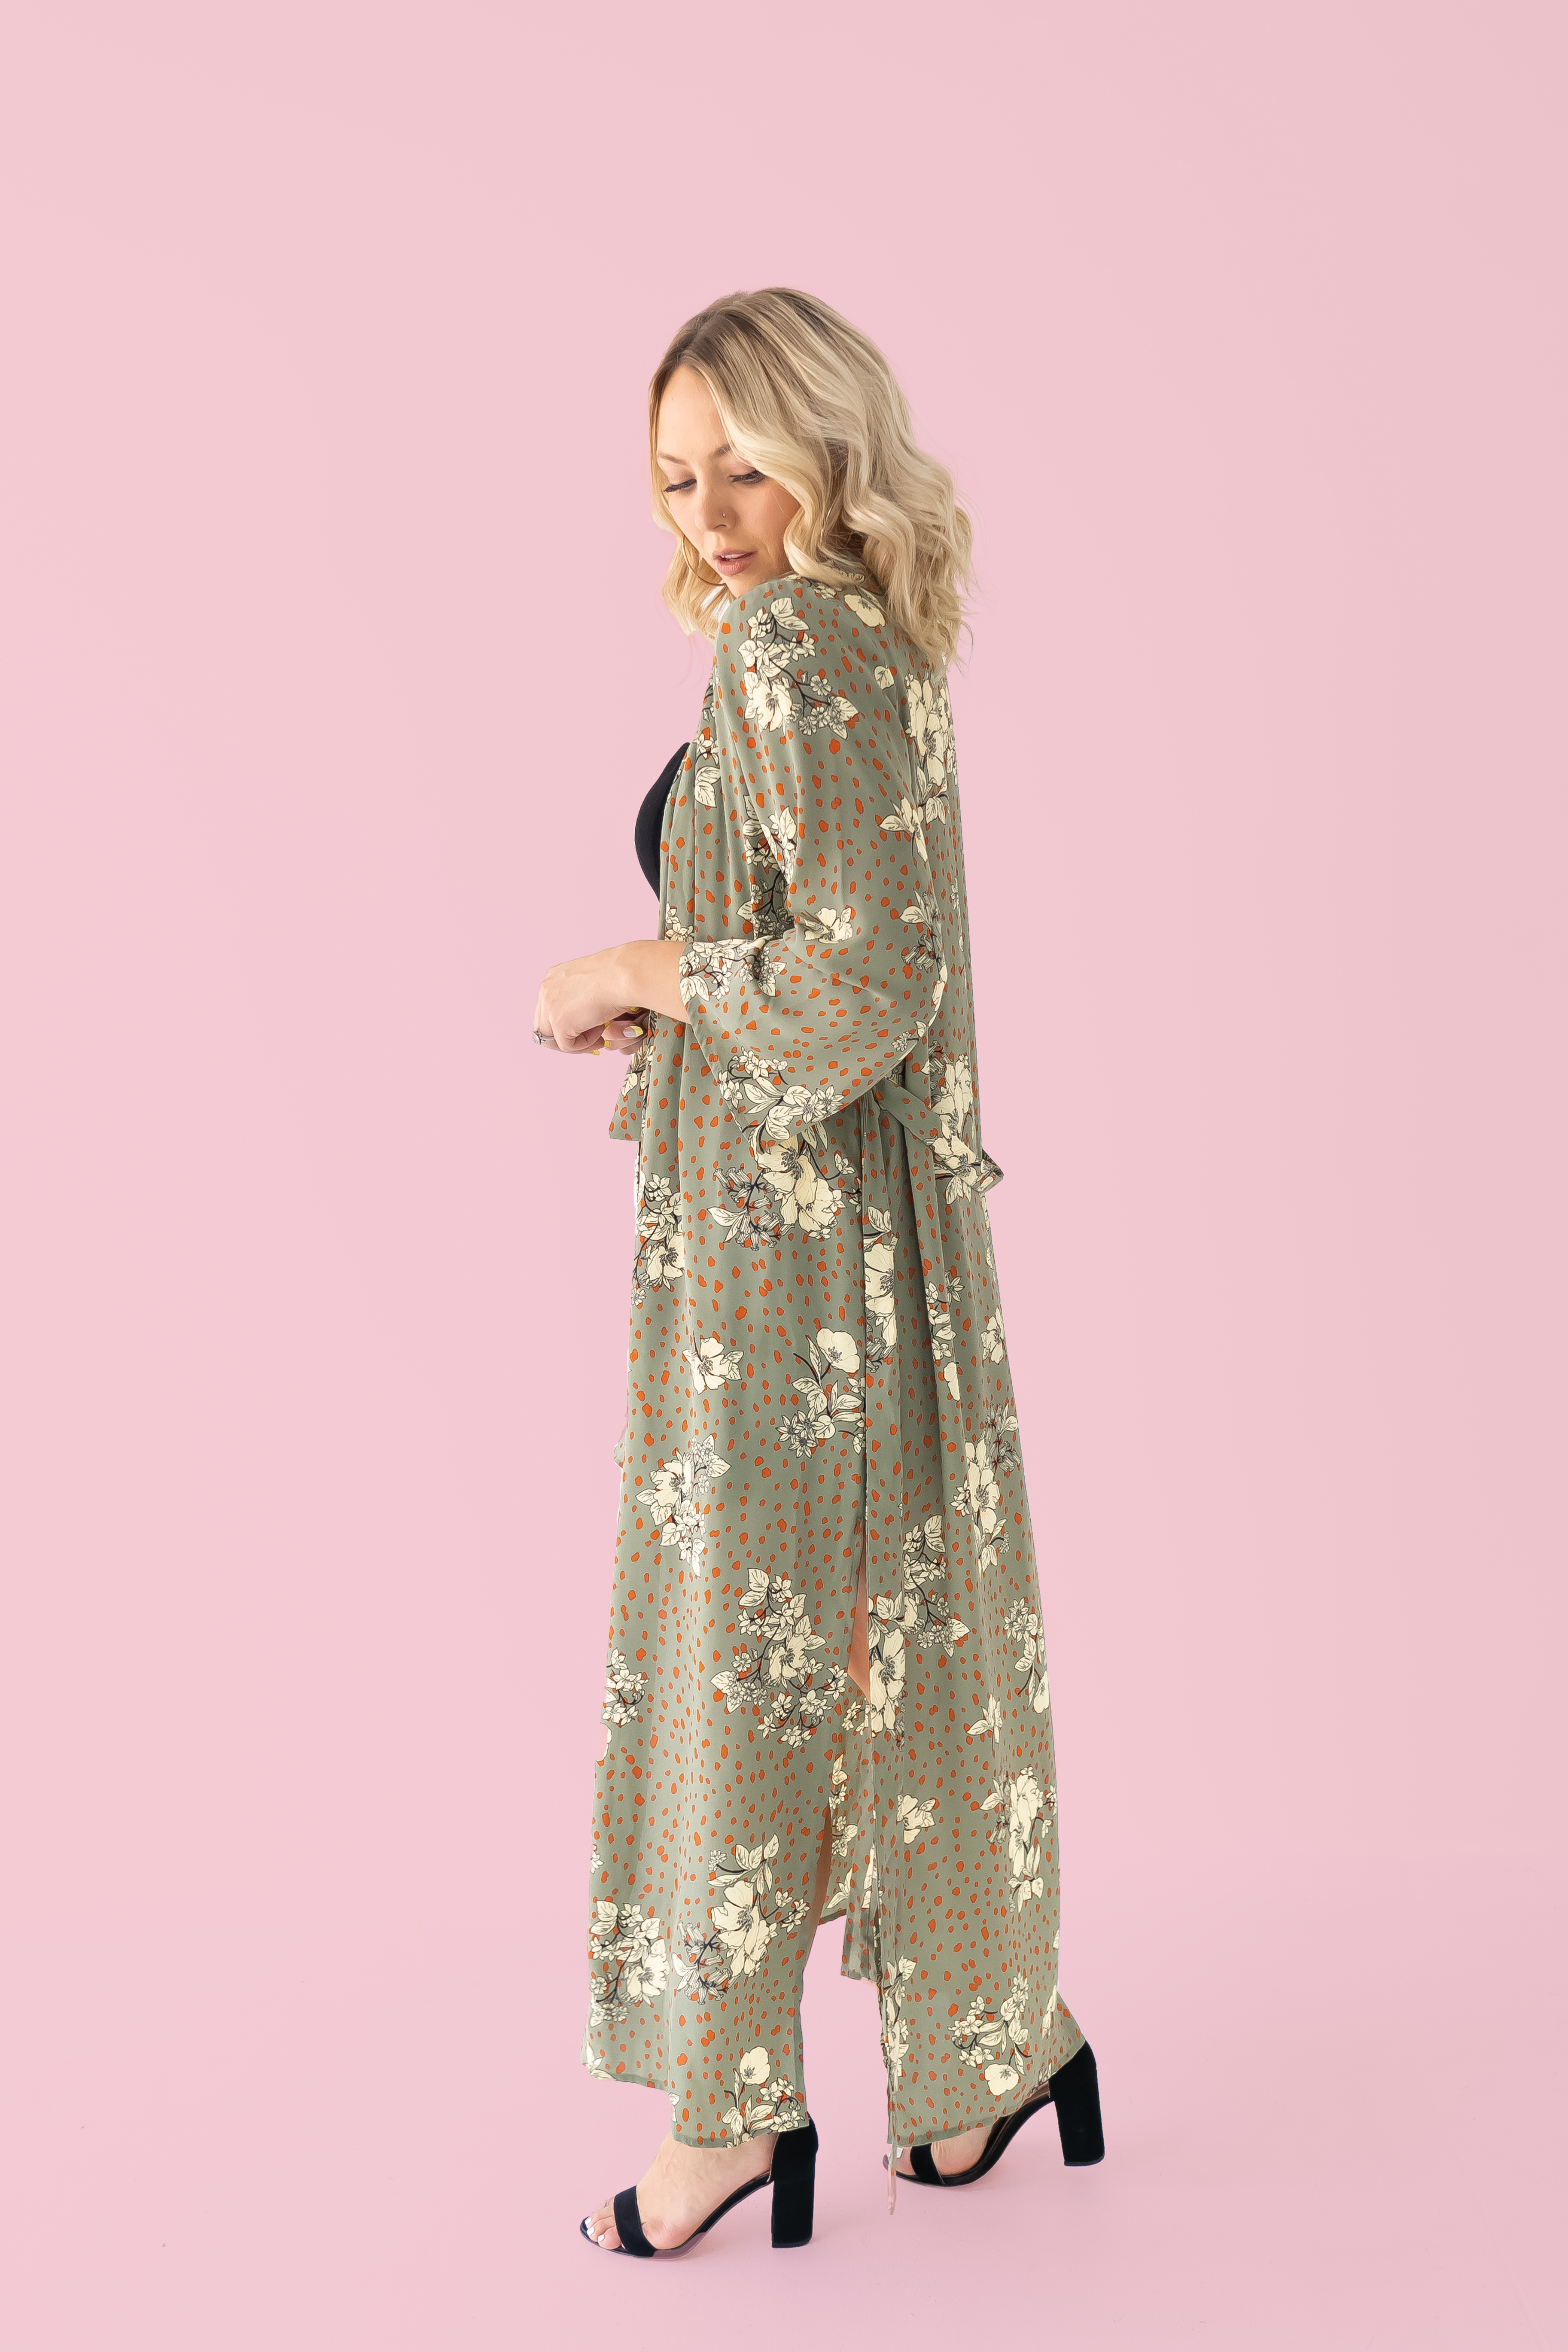 """EXCLUSIVE TO MAVERICK! FLOWY LONG KIMONO, SLITS ON BOTH SIDES WITH POCKETS AND REMOVABLE TIE. 100% POLYESTER. AMANDA IS A SIZE 2, WEARING A SMALL. GABBY IS 5'8"""" A SIZE 10/12 AND 38DD WEARING AN XLARGE. XS 0-2 S 4-6 M 8-10 L 12-14 XL 16-18"""